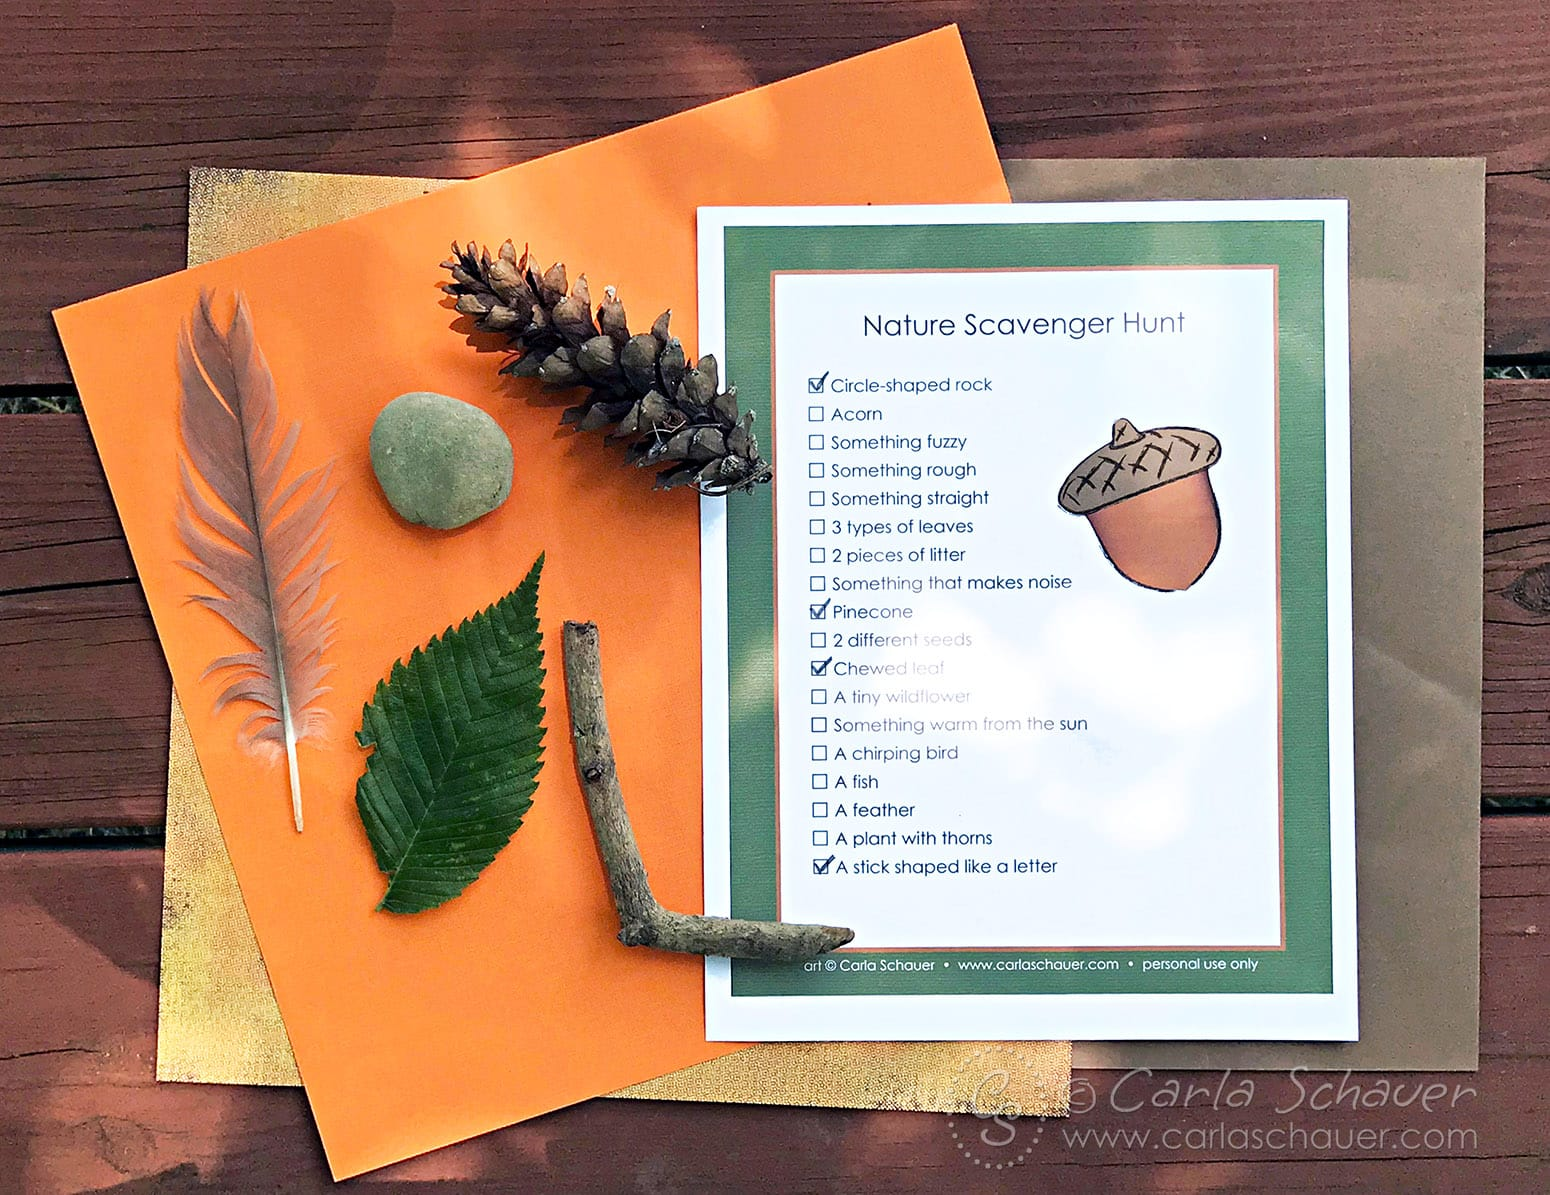 Printed Nature Scavenger Hunt Paper next to nature items.